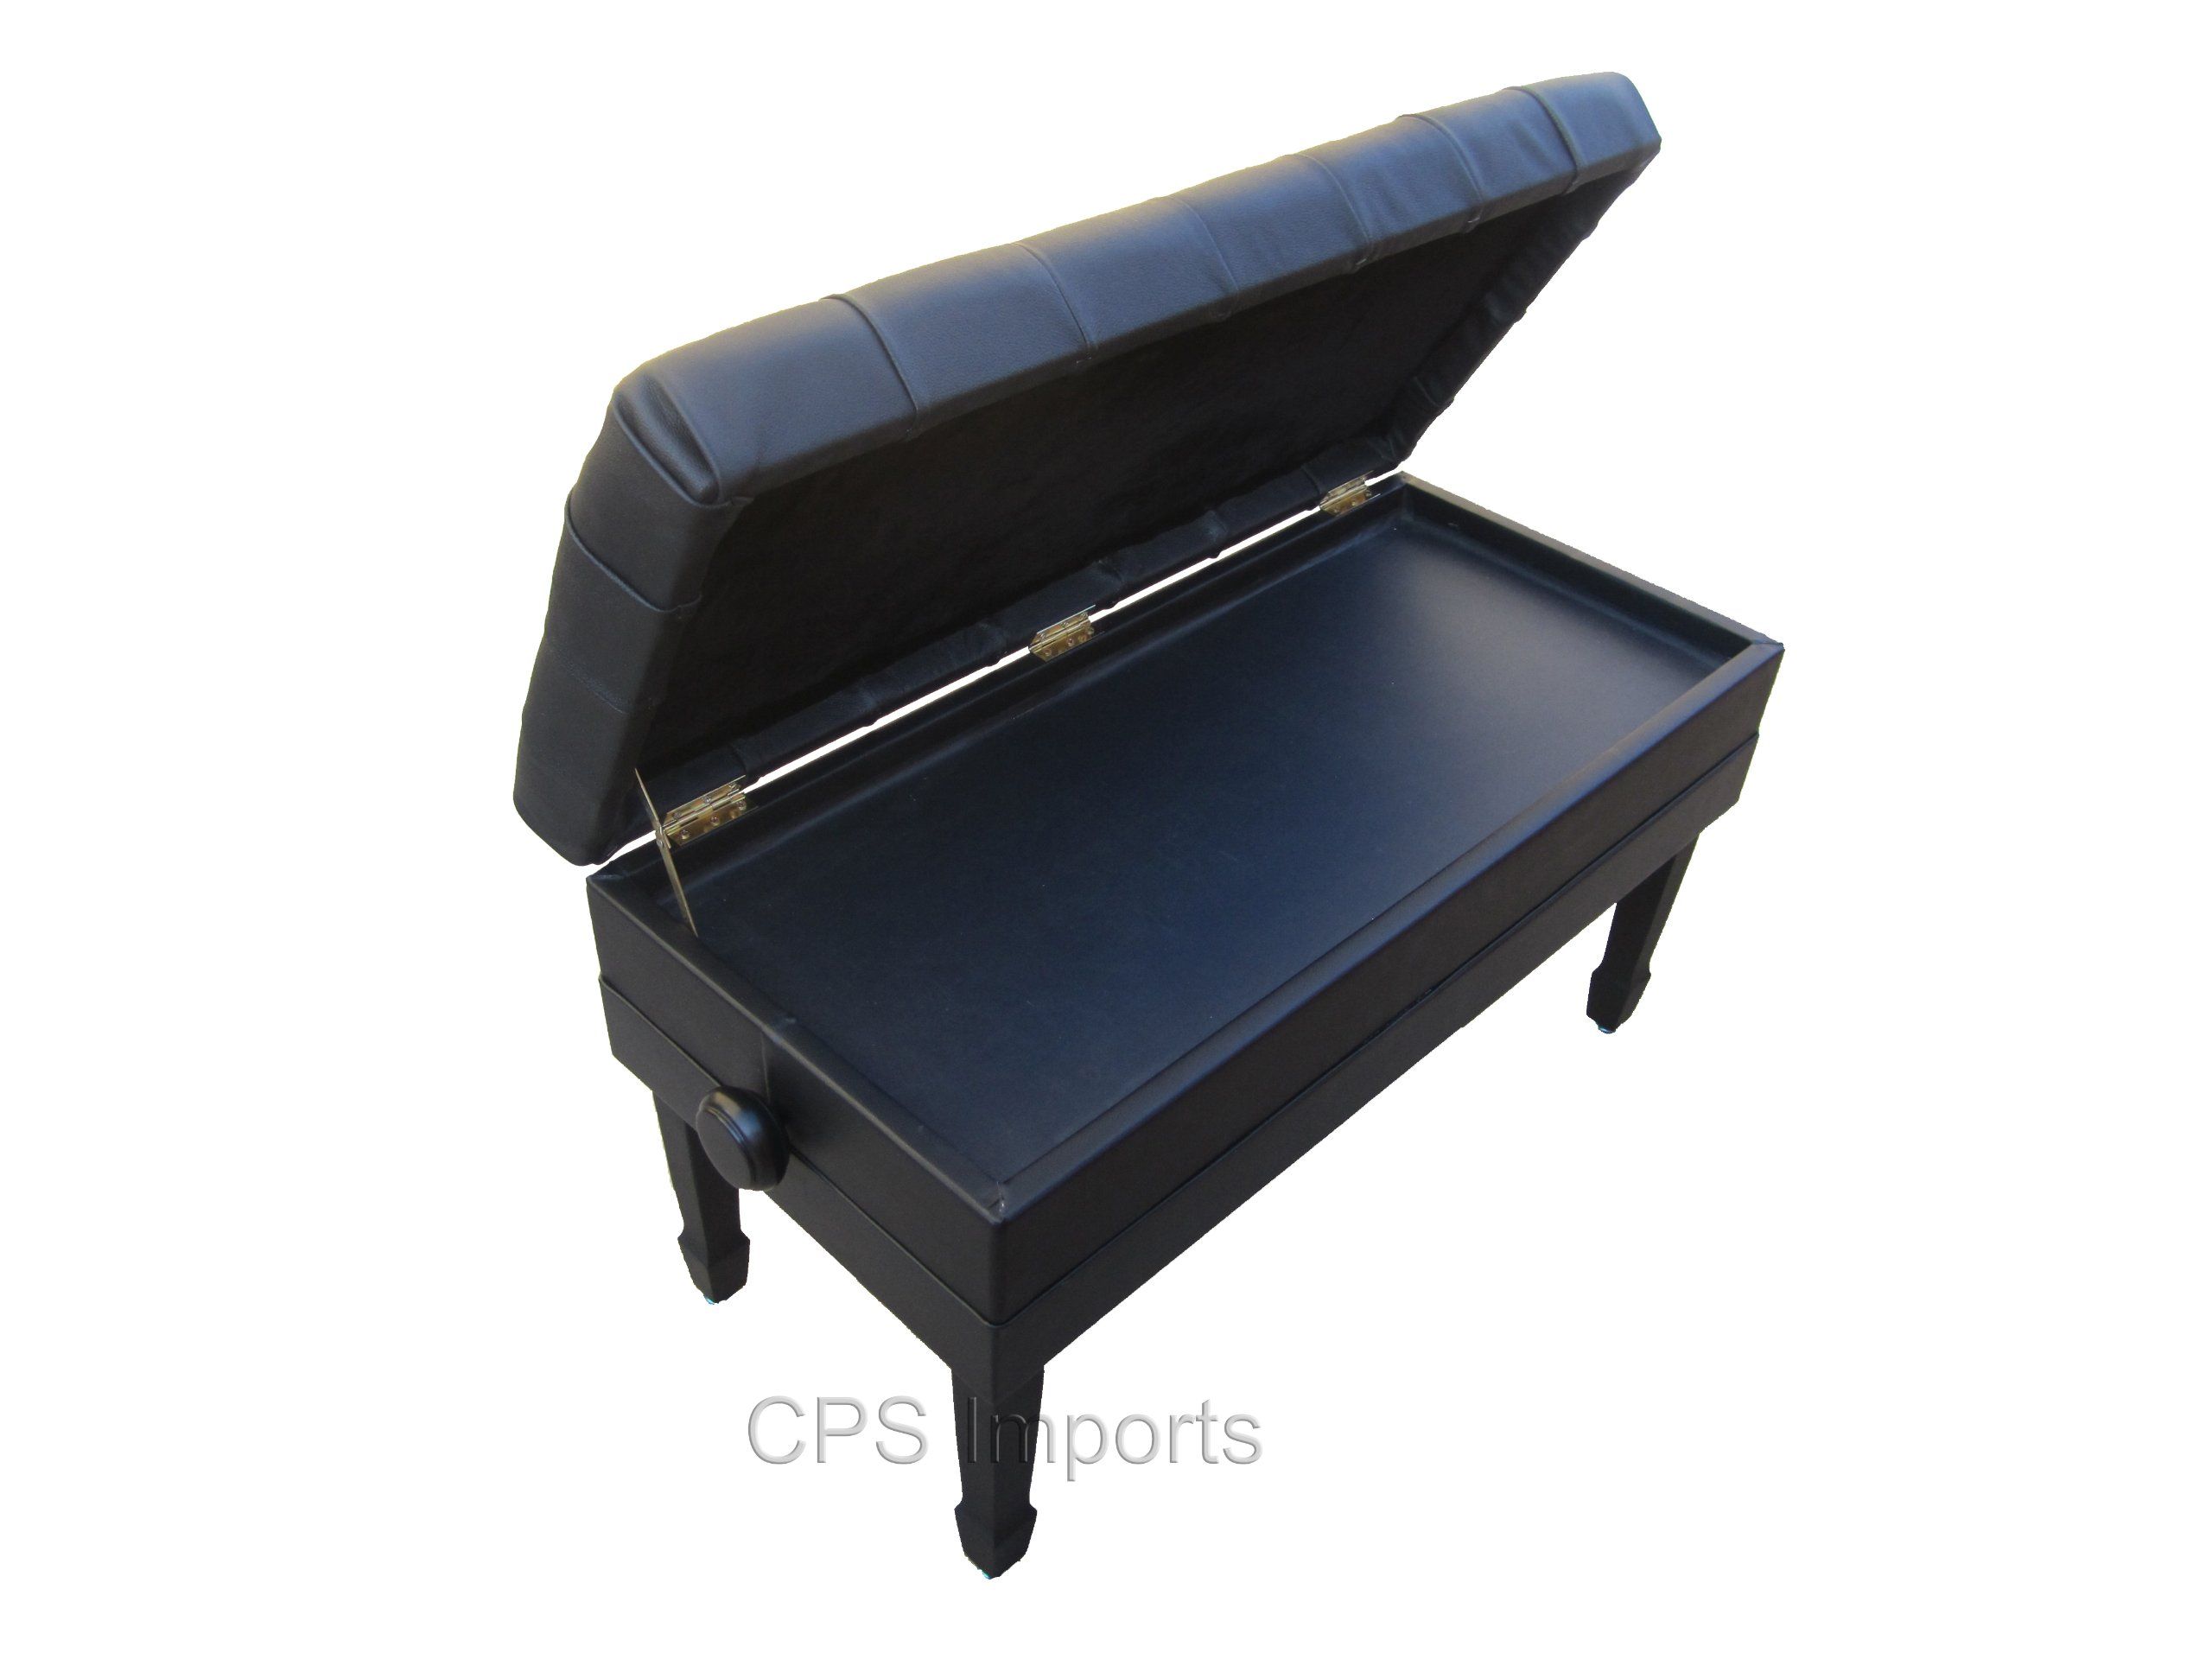 Adjustable Duet Size Genuine Leather Artist Concert Piano Bench Stool in Ebony Satin with Music Storage